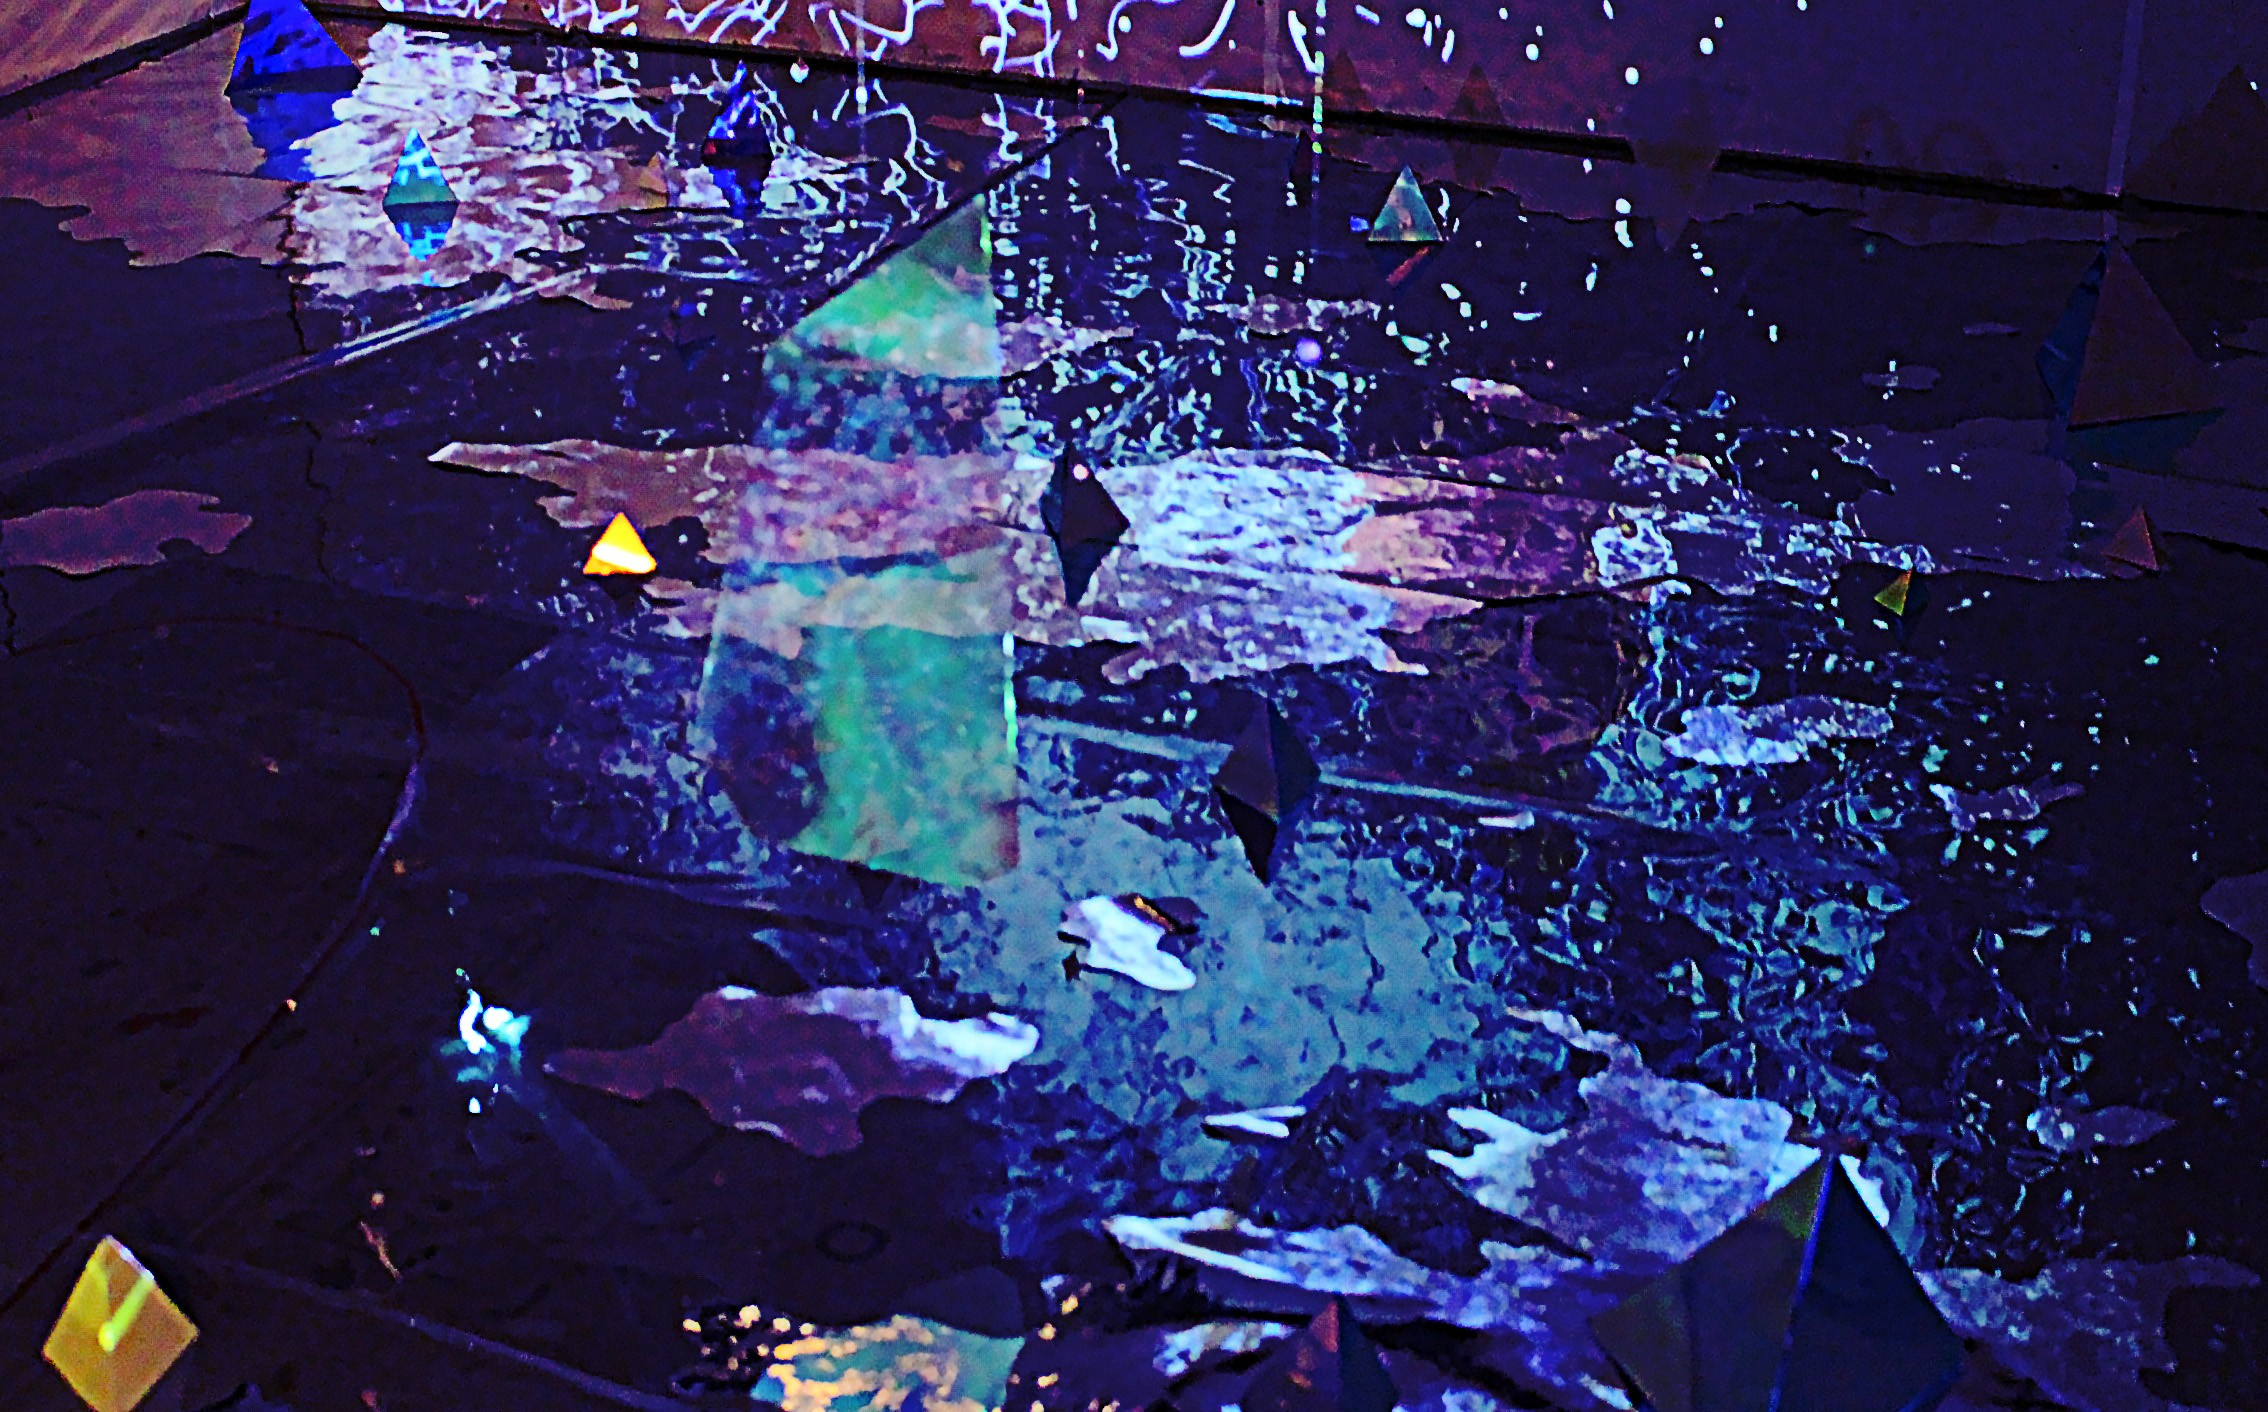 multimedia artwork created with the layers of iridescent acetate pieces, transparent mylar and motion video